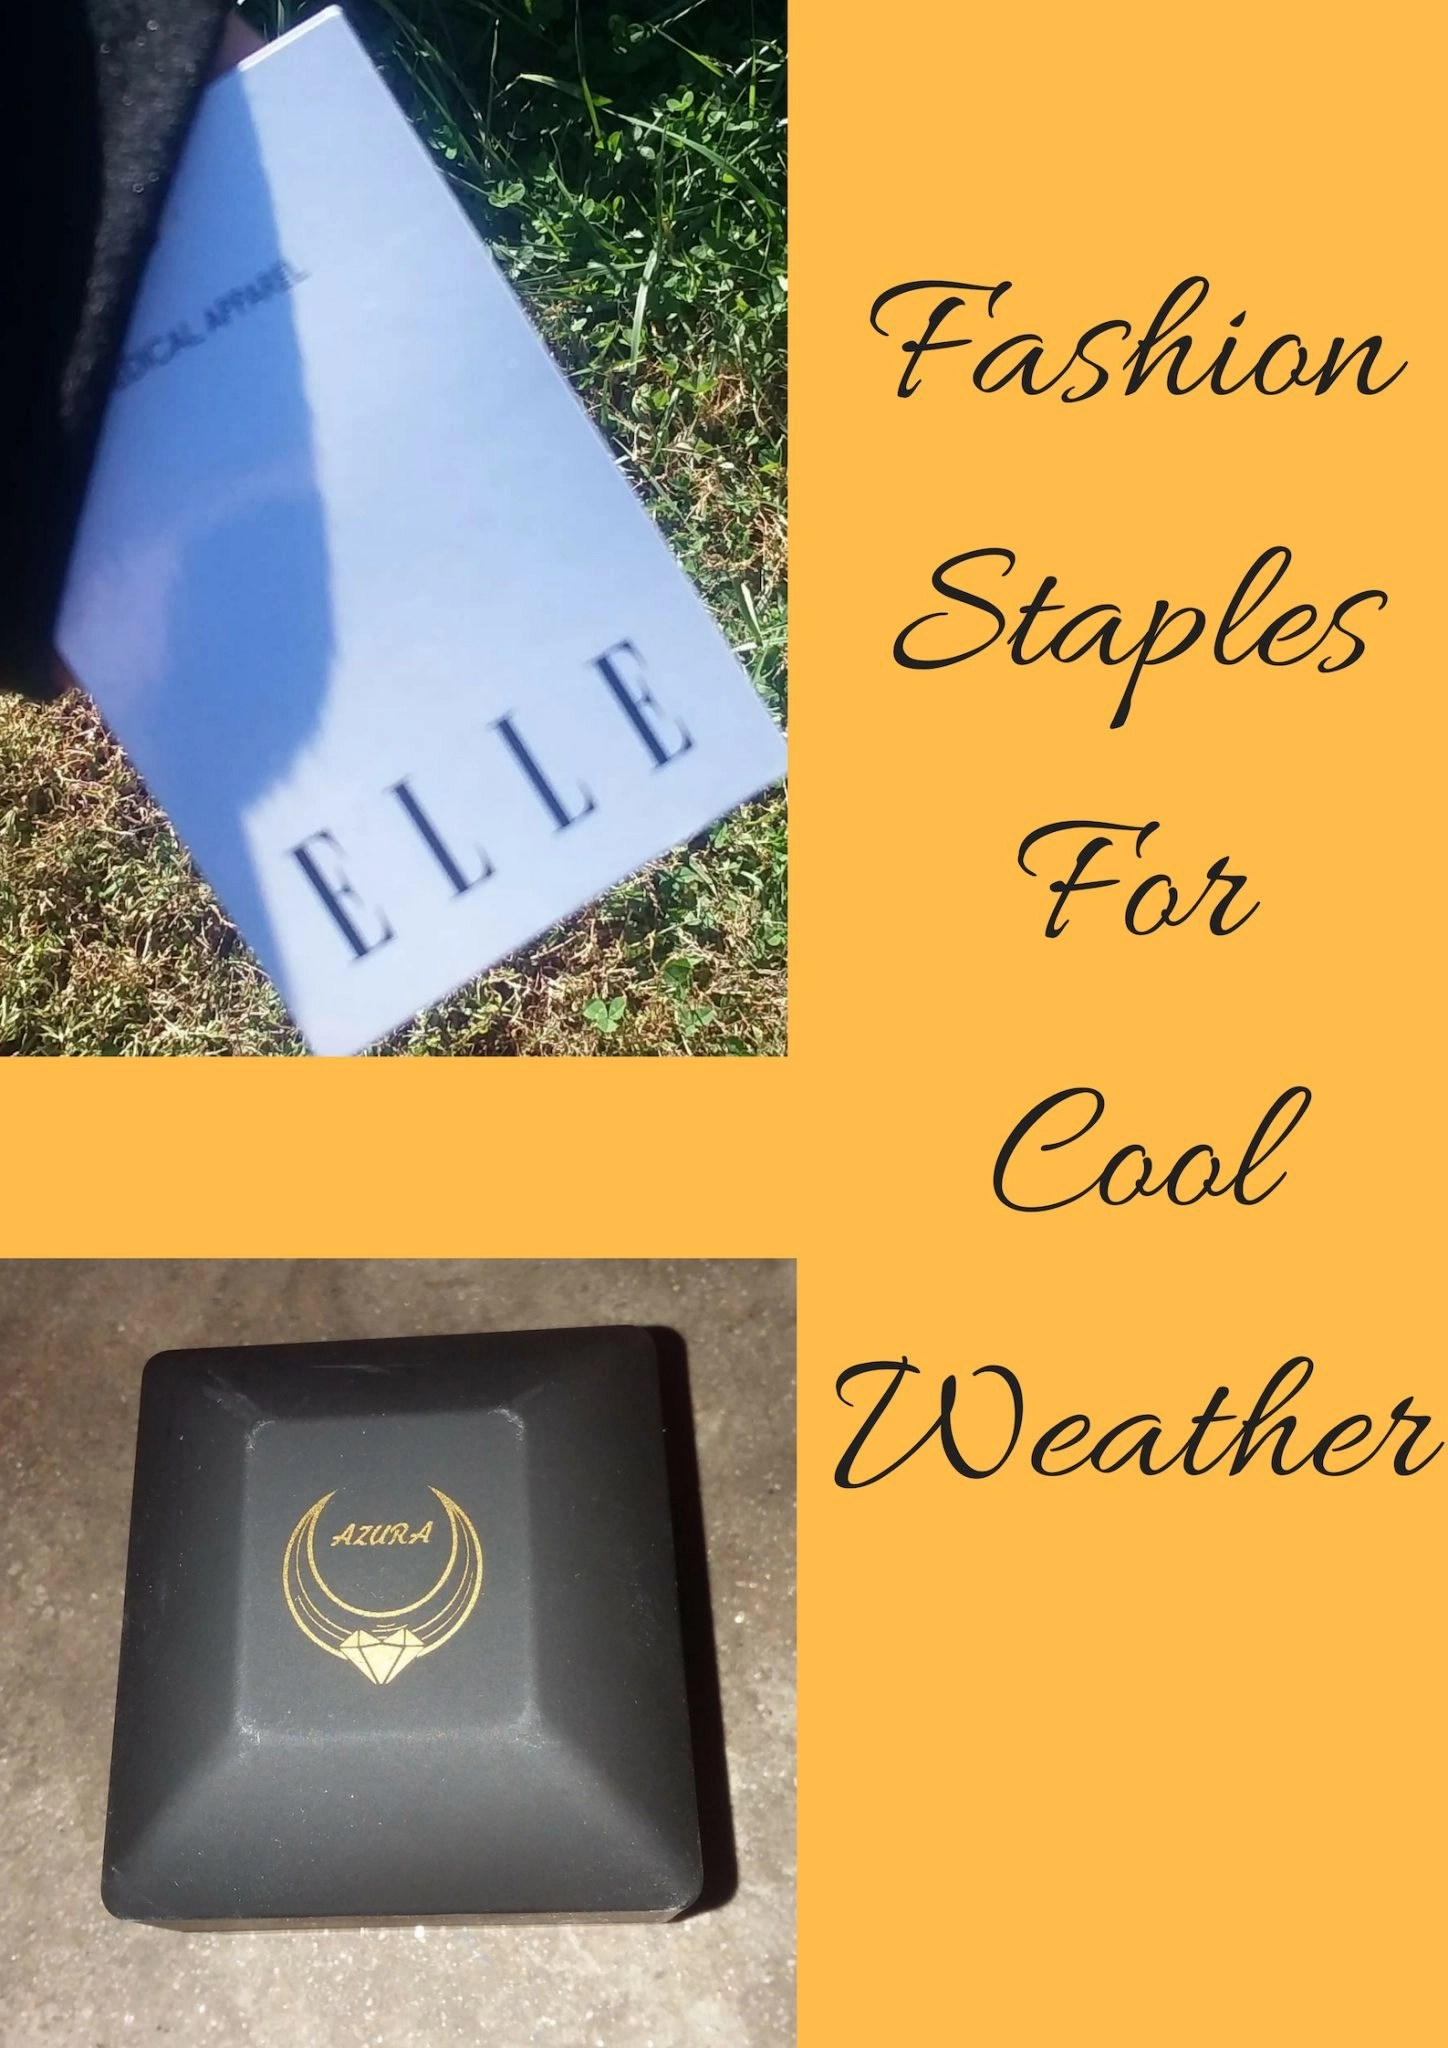 Fashion Staples For Cool Weather